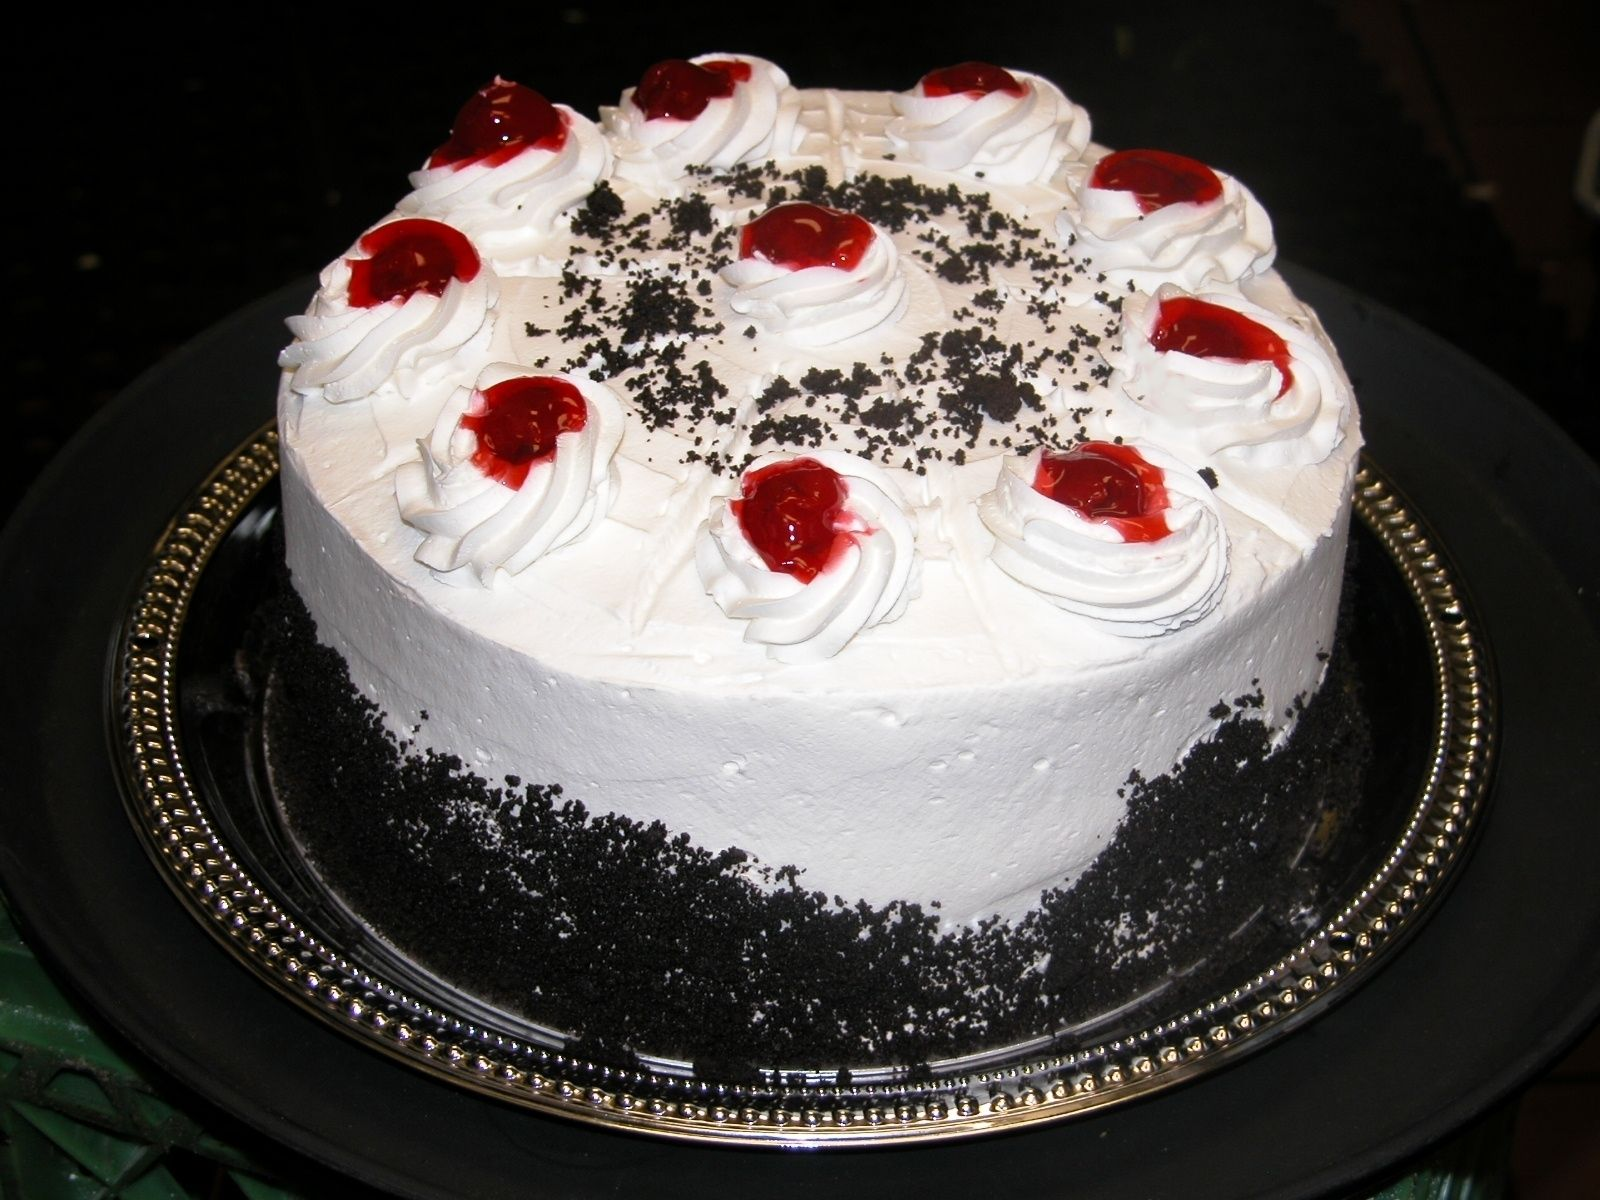 Google Image Result for http://www.buykind.com/images/Black_Forest_Cake.JPG